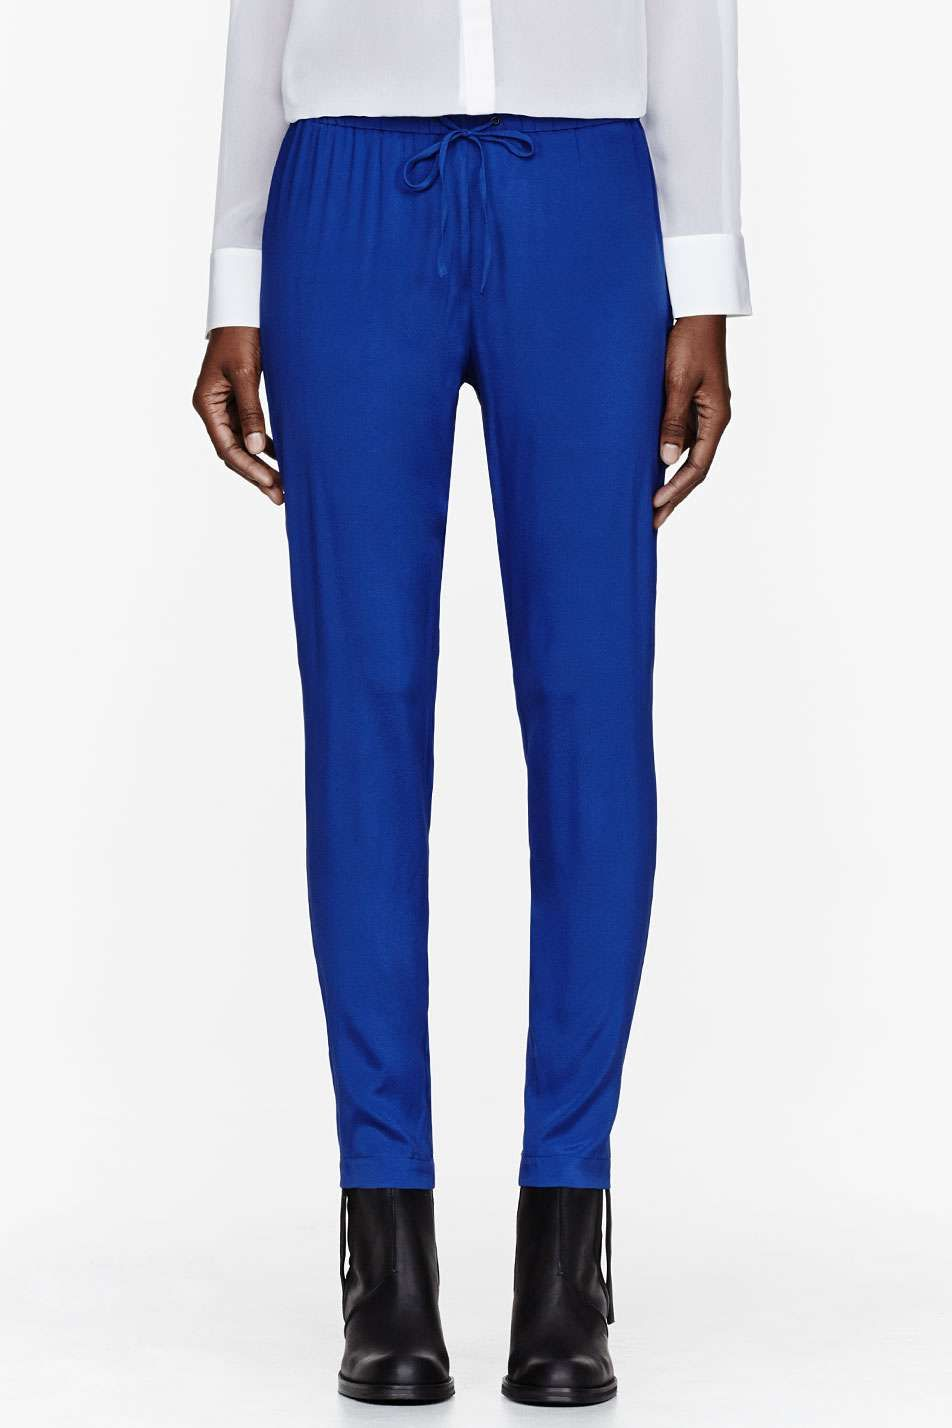 Rag And Bone Royal blue silk Easier trousers